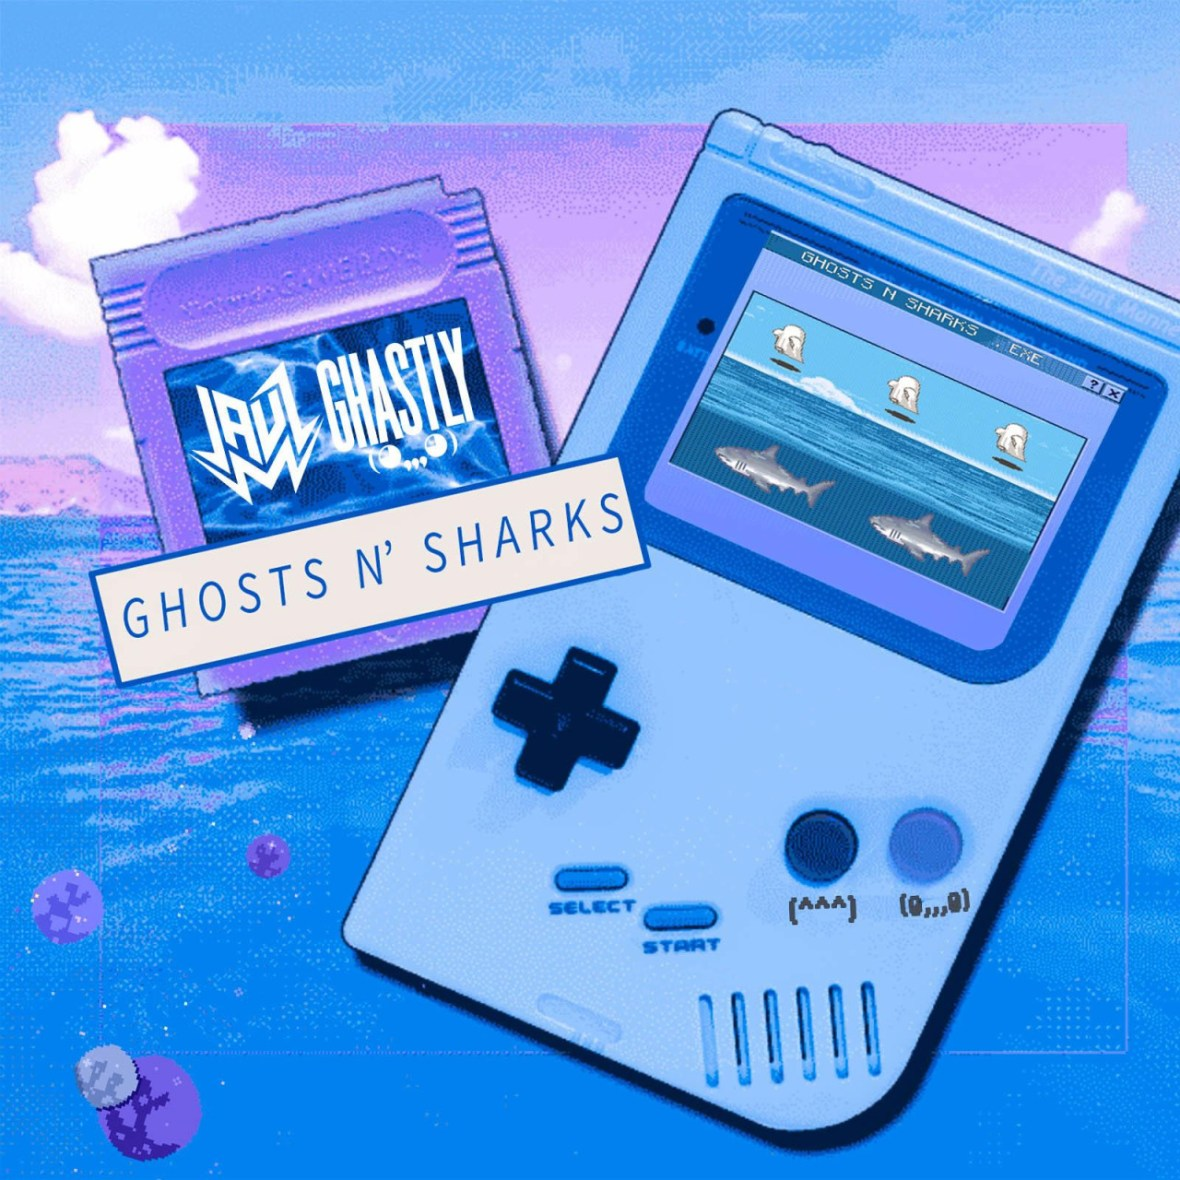 We Own The Nite NYC_Ghastly_Jauz_Ghosts N' Sharks